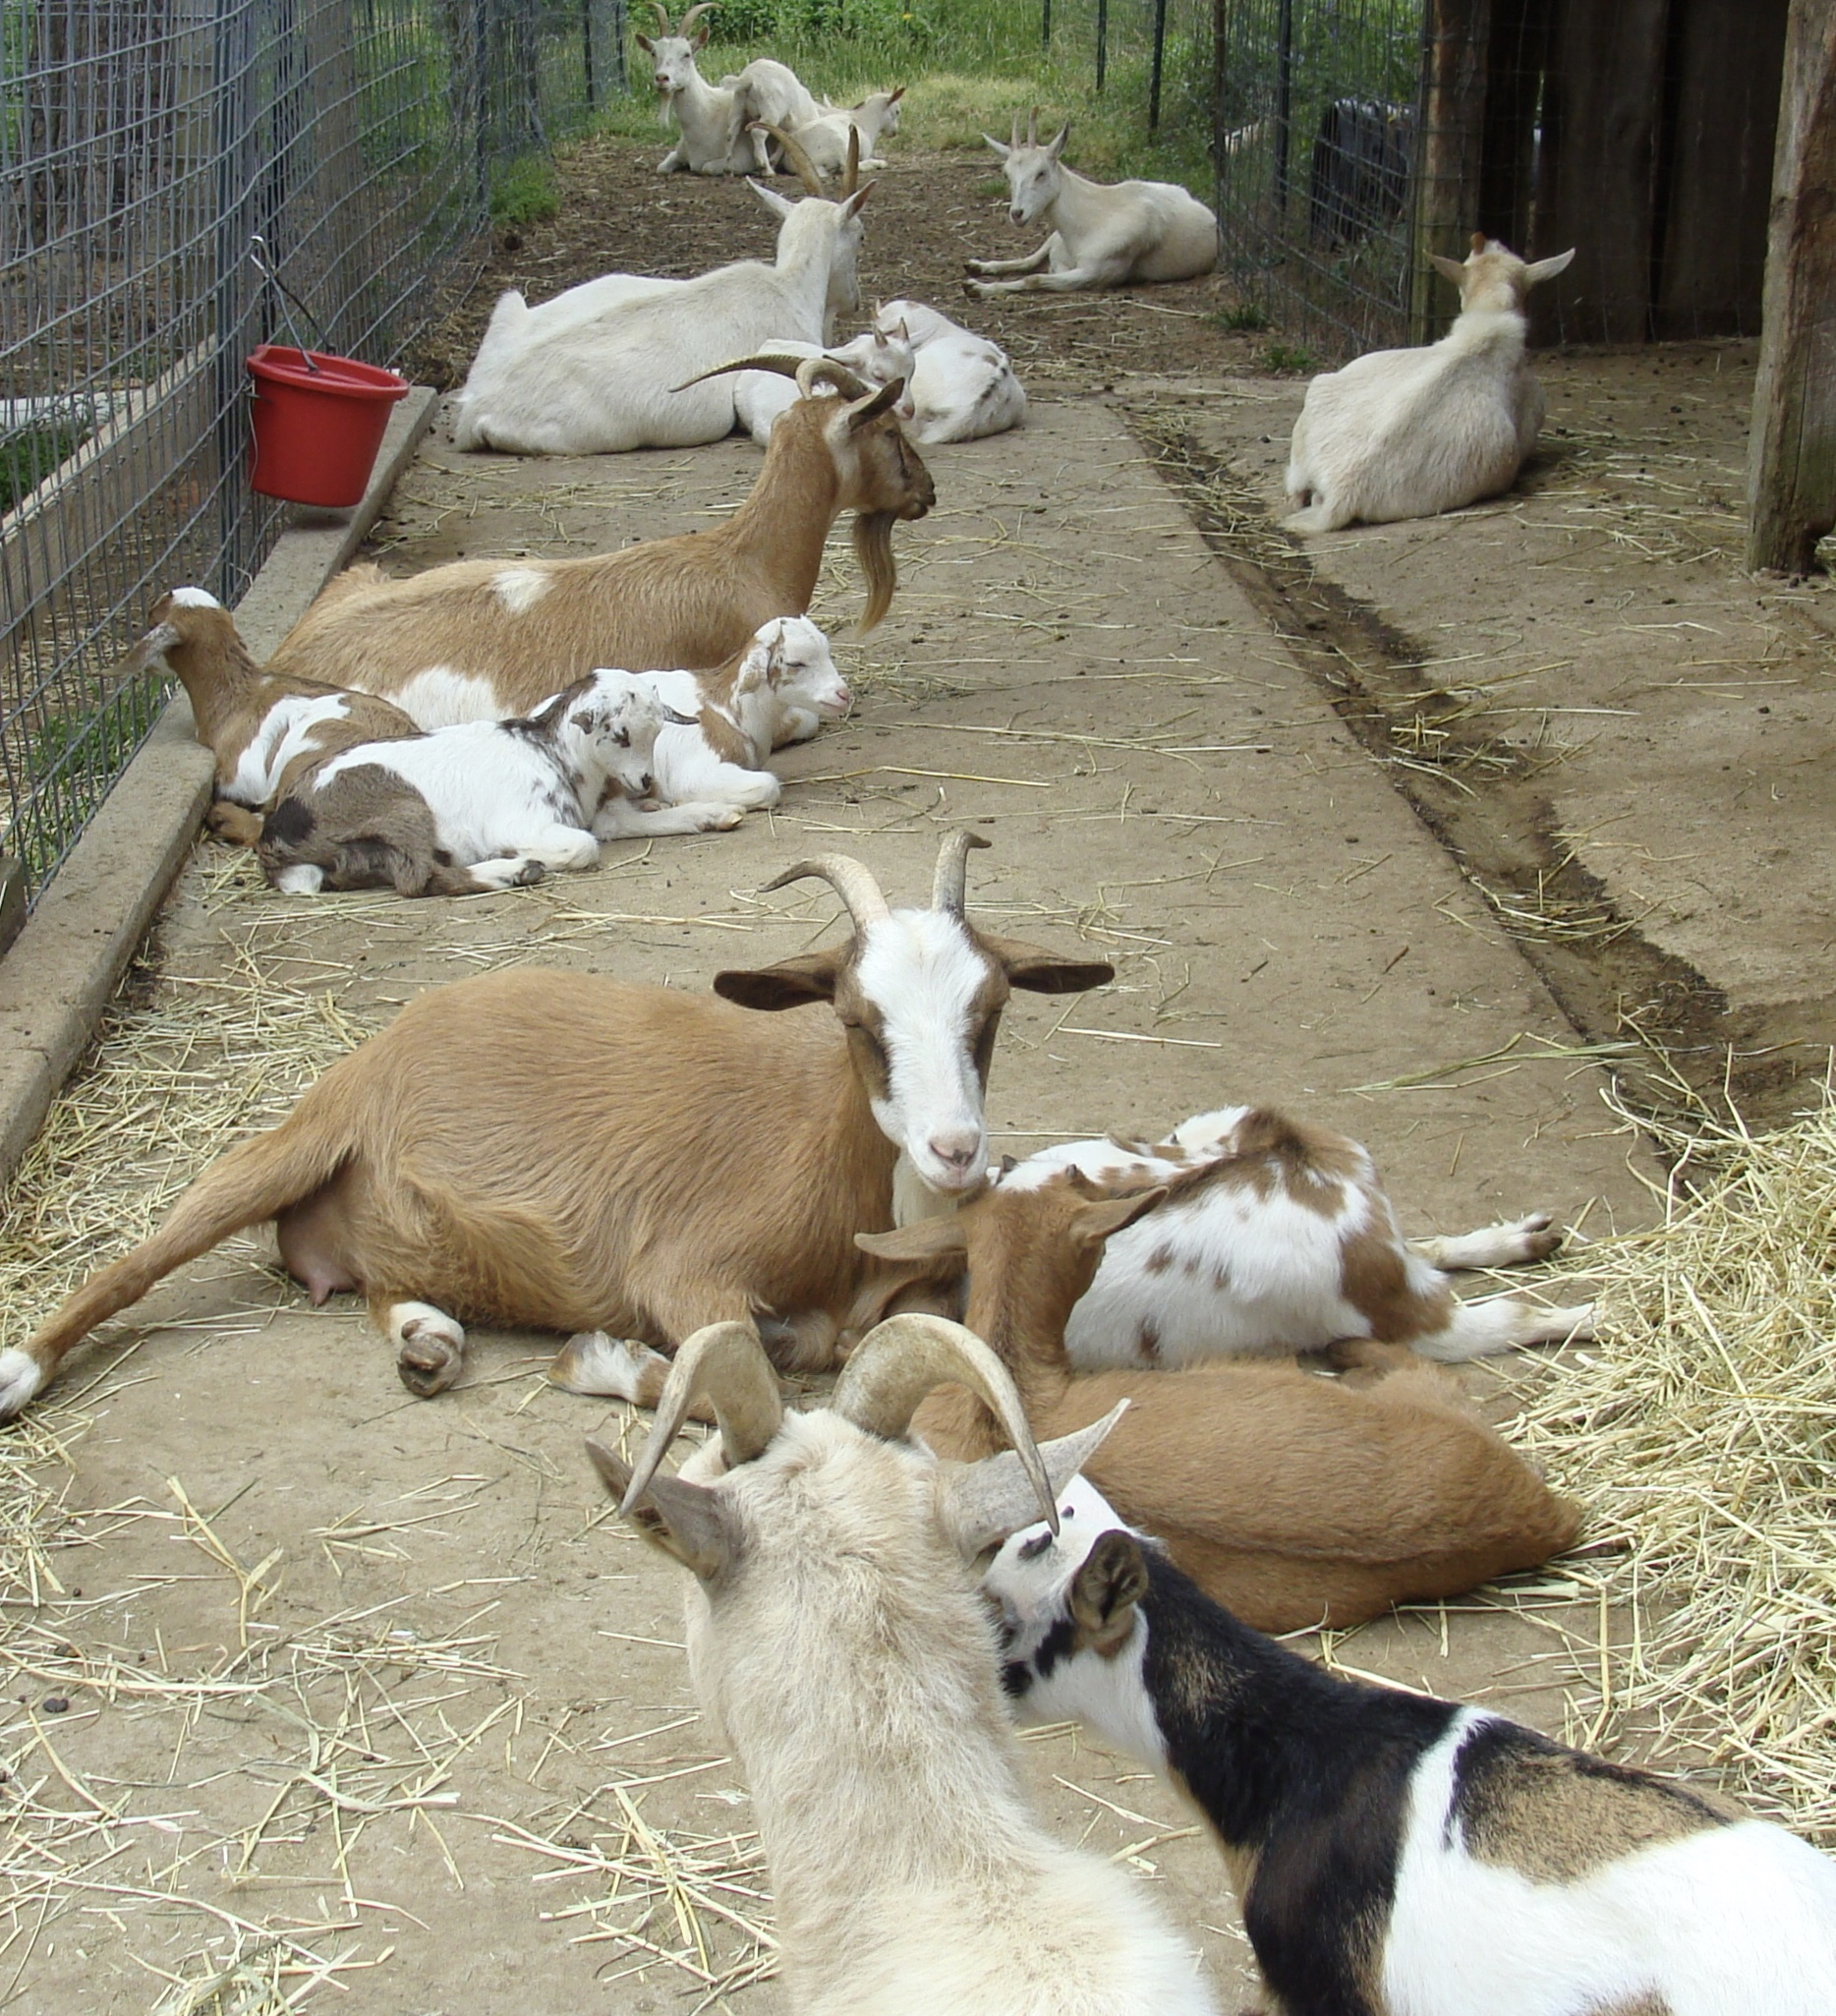 some of our herd during the morning siesta